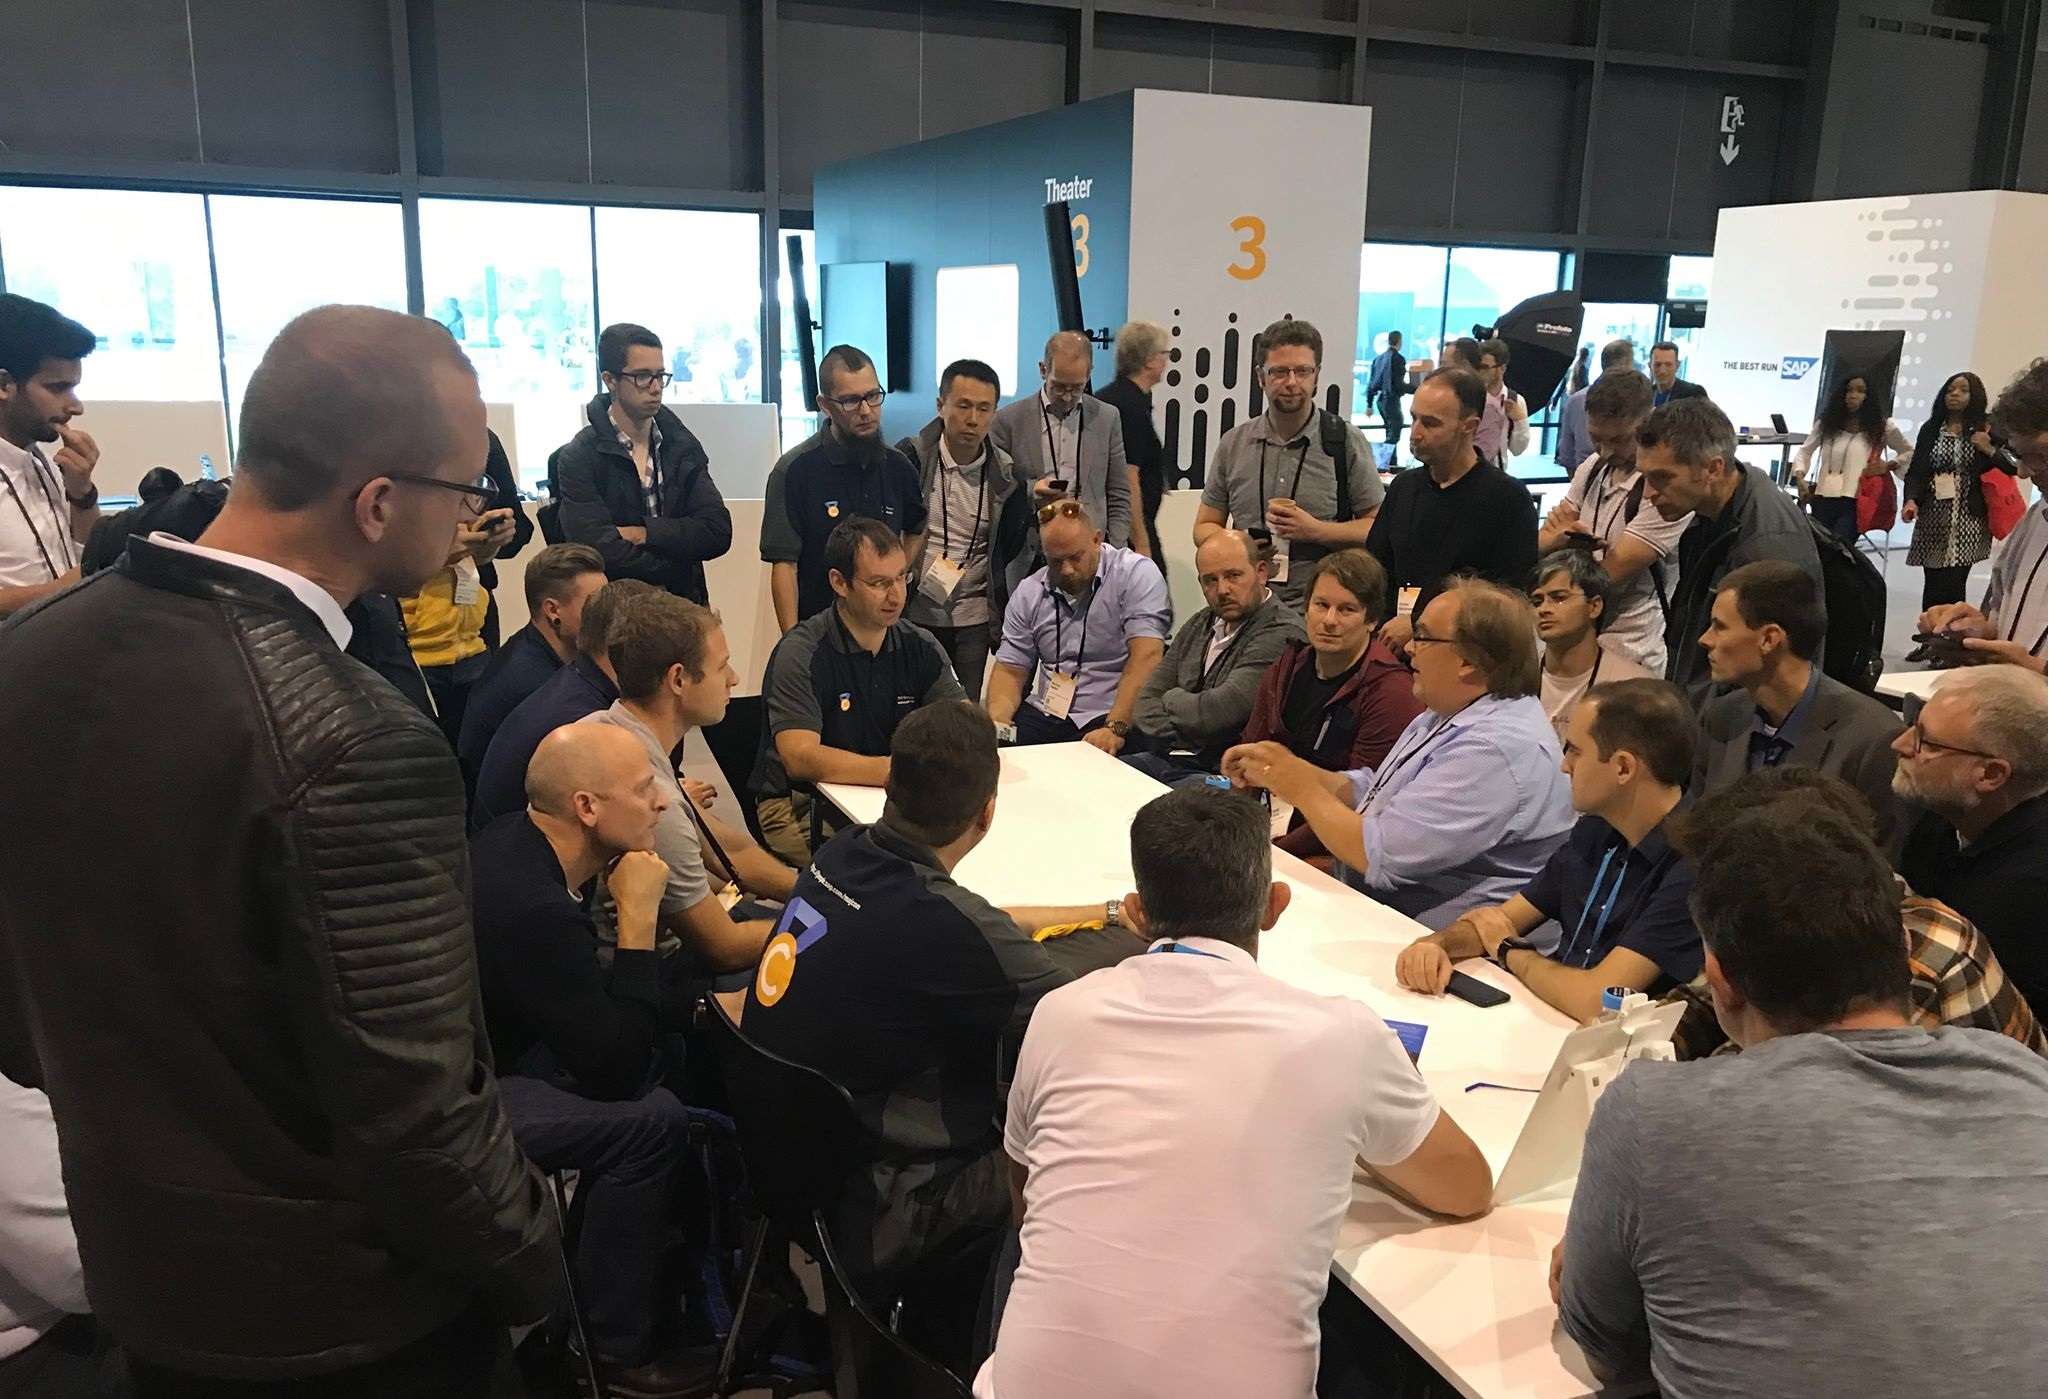 Andreas%20at%20the%20head%20of%20the%20table%20as%20one%20of%20the%20leads%20at%20an%20SAP%20TechEd%20unconference